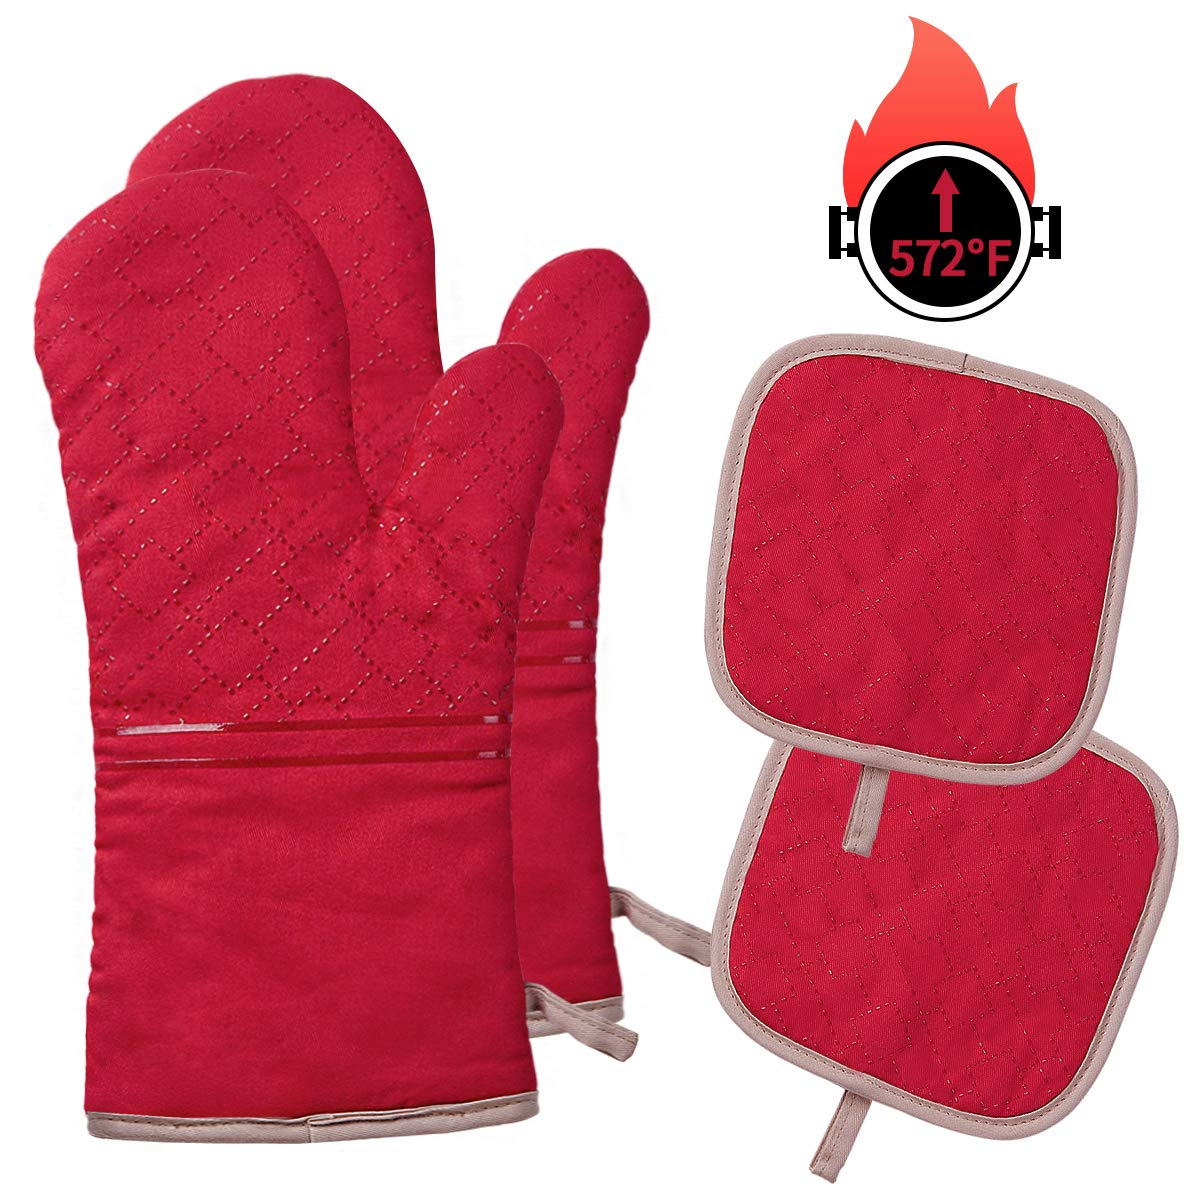 YOUTAI Oven Mitts and Pot Holders, 4PCS Oven Mitts Set